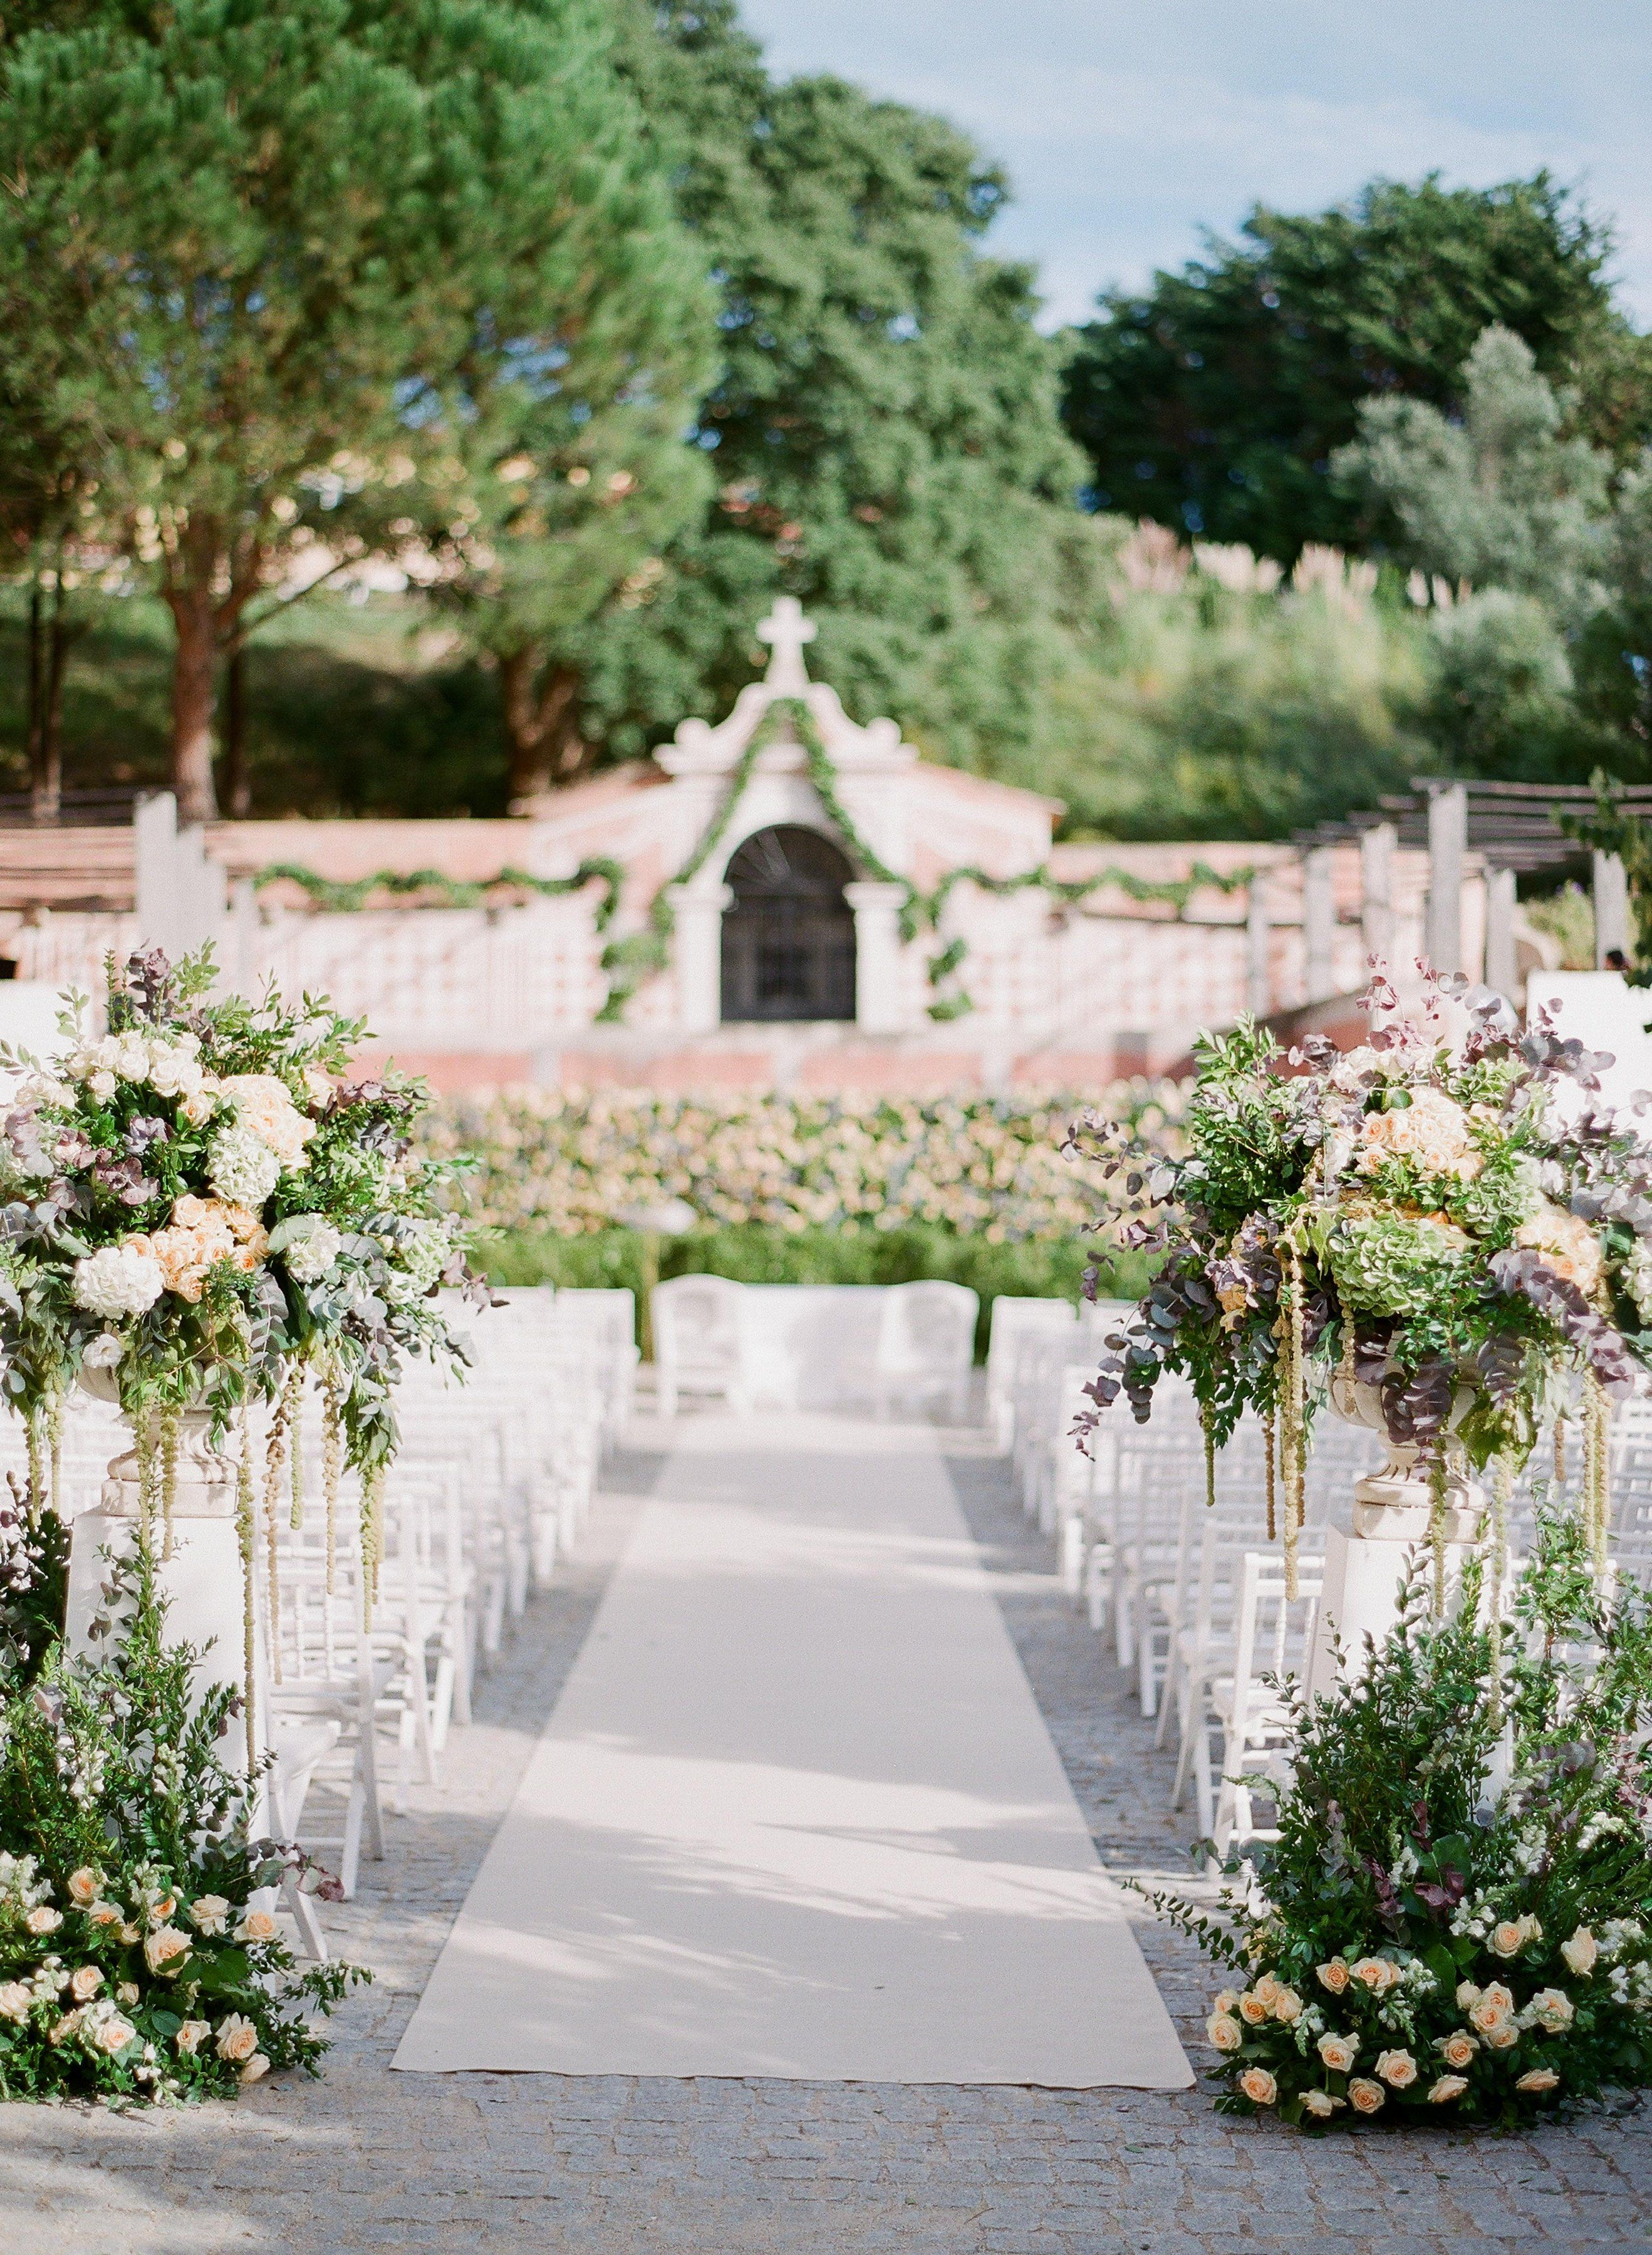 Stunning Ceremony Area Set In A Garden In Sintra Portugal Wedding Ceremony Location Outdoor Wedding Ceremony